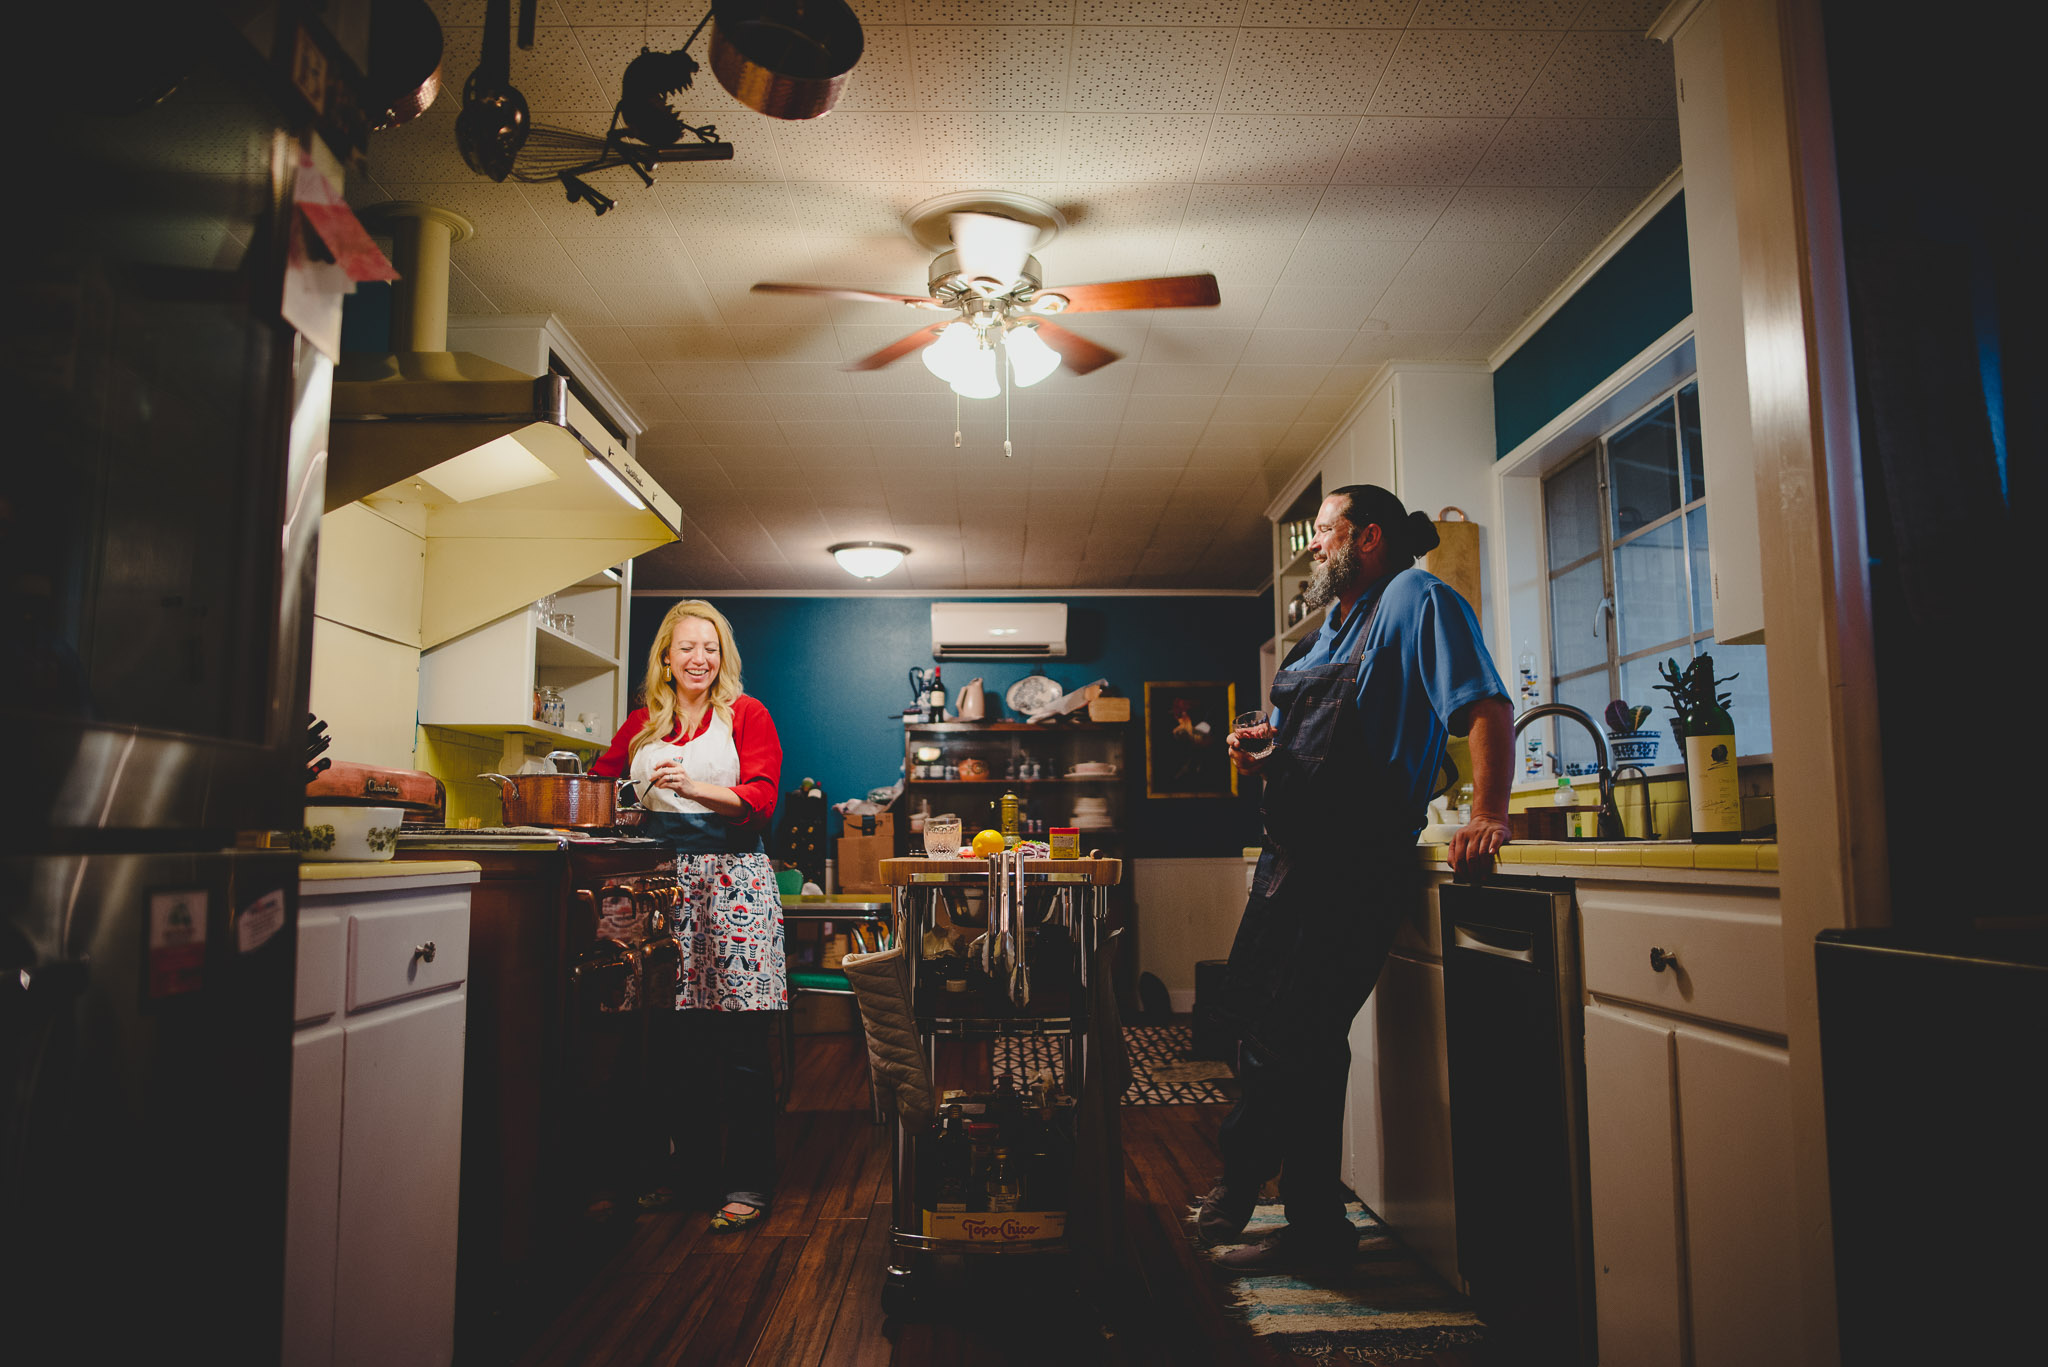 Stephanie & Chef Jason - Cooking up a mean meal and killer drinks at their home